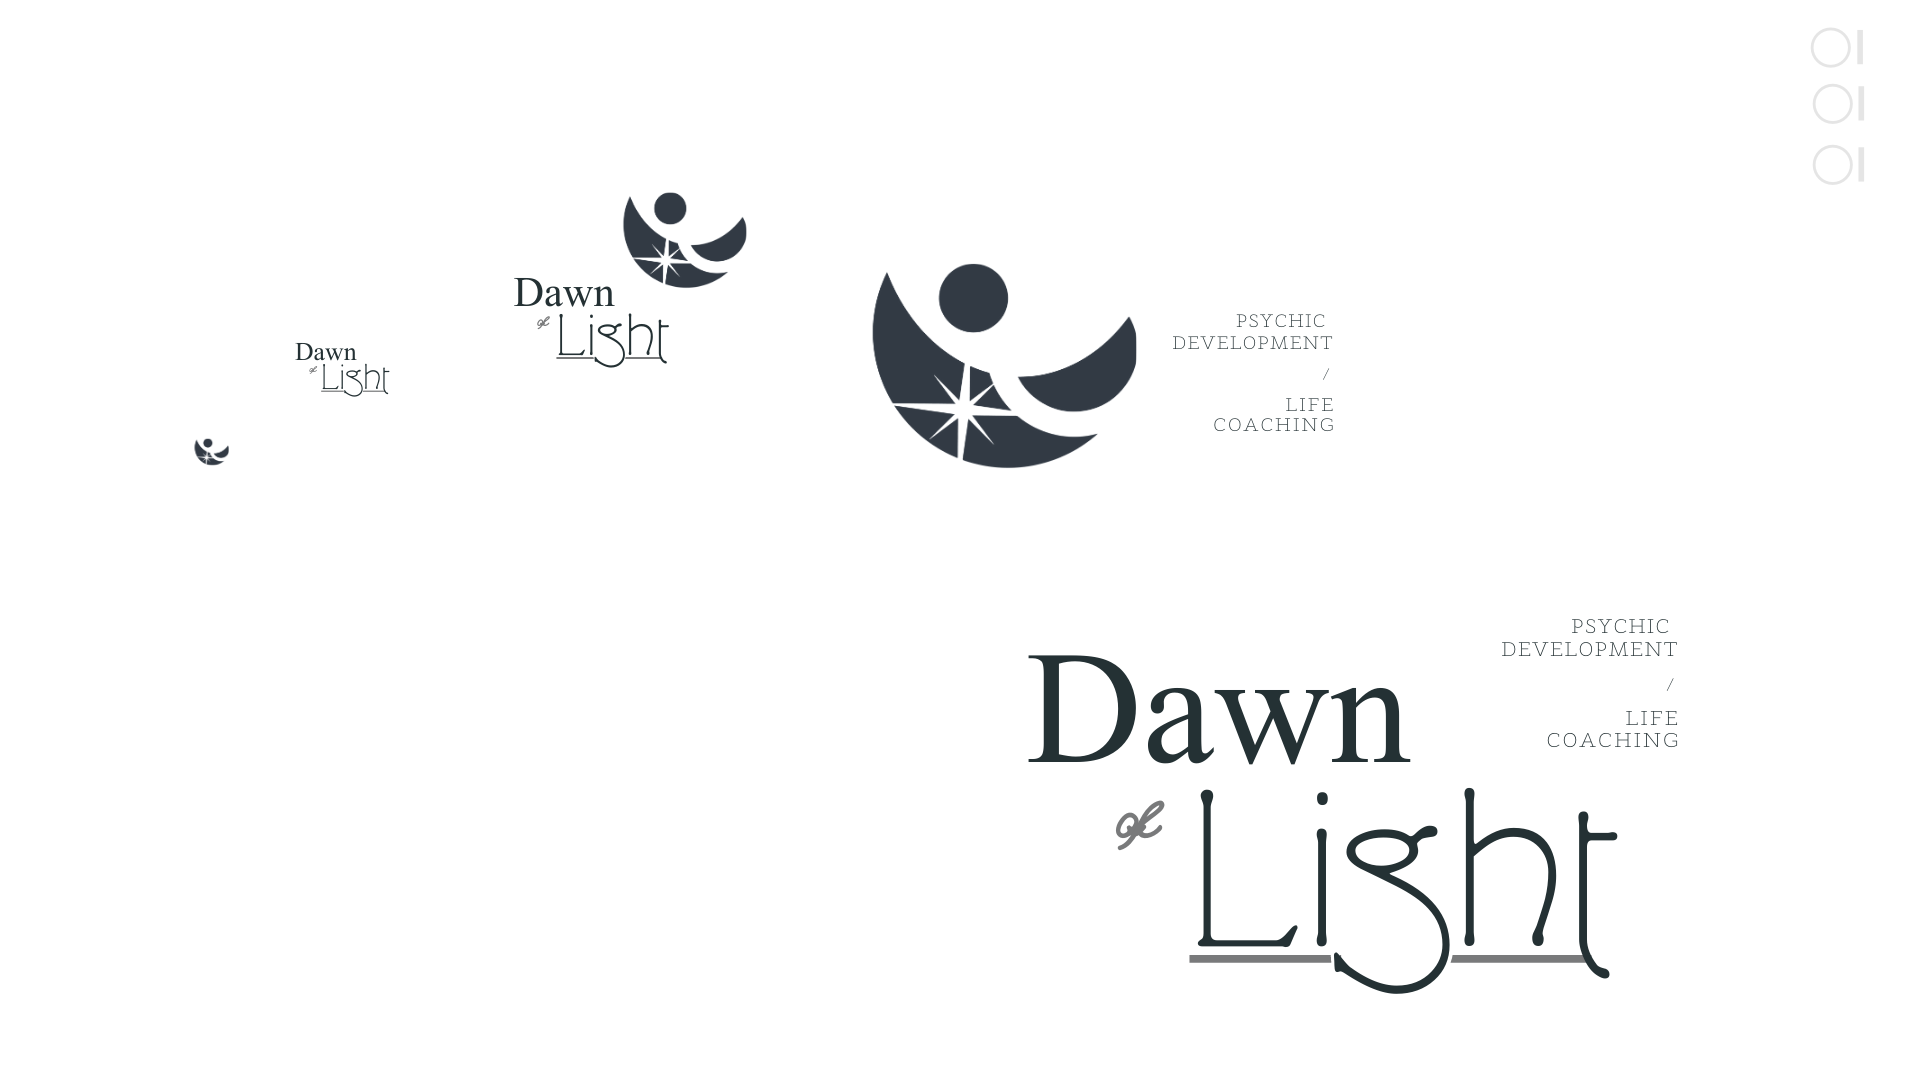 A sample of logos created by Owl Street Studio